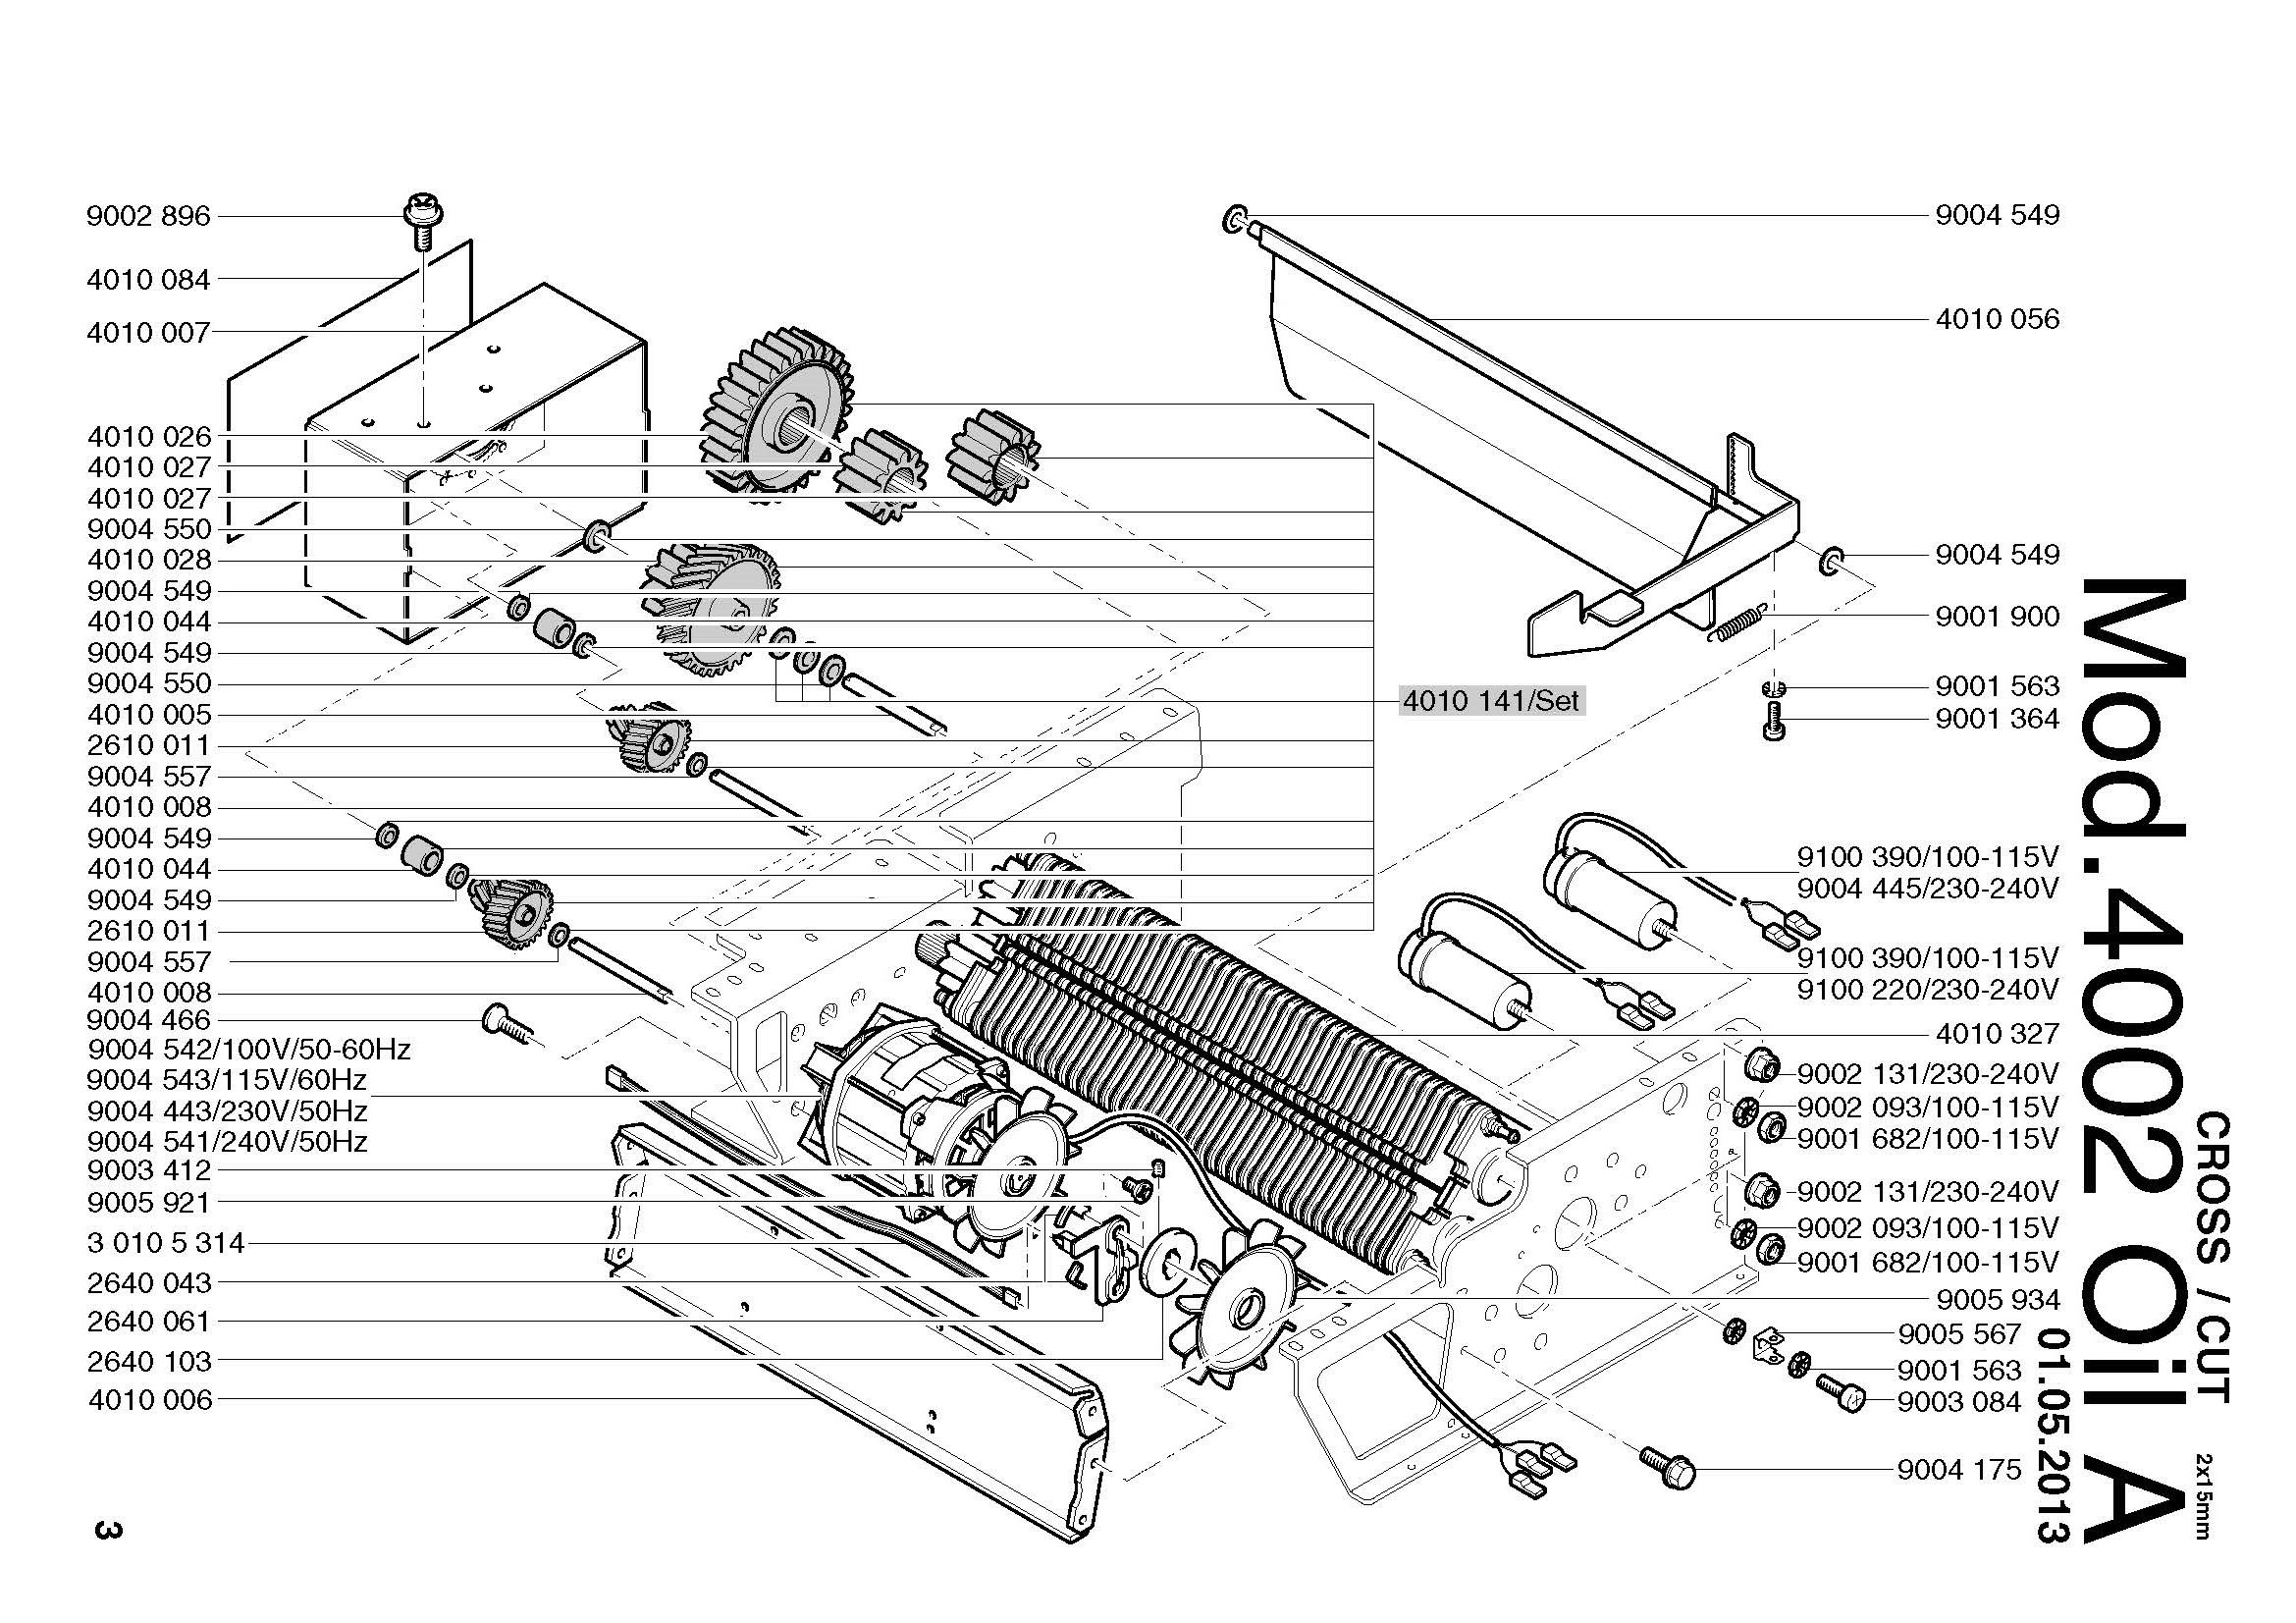 home speaker wiring diagram with Paper Shredder Parts Diagram on Painless Performance Painless Wiring For Cars And Trucks Old Painless Wiring Installation Painless Wiring Diagram furthermore Wiring A Bedroom Diagram furthermore Un Assembled ES 335 Style Wiring Kit likewise Kia Forte 2016 Front Parking Camera further Connecting generator Wire Diagrams Easy Simple Detail Ideas General Ex le 30   Rv Wiring Diagram.